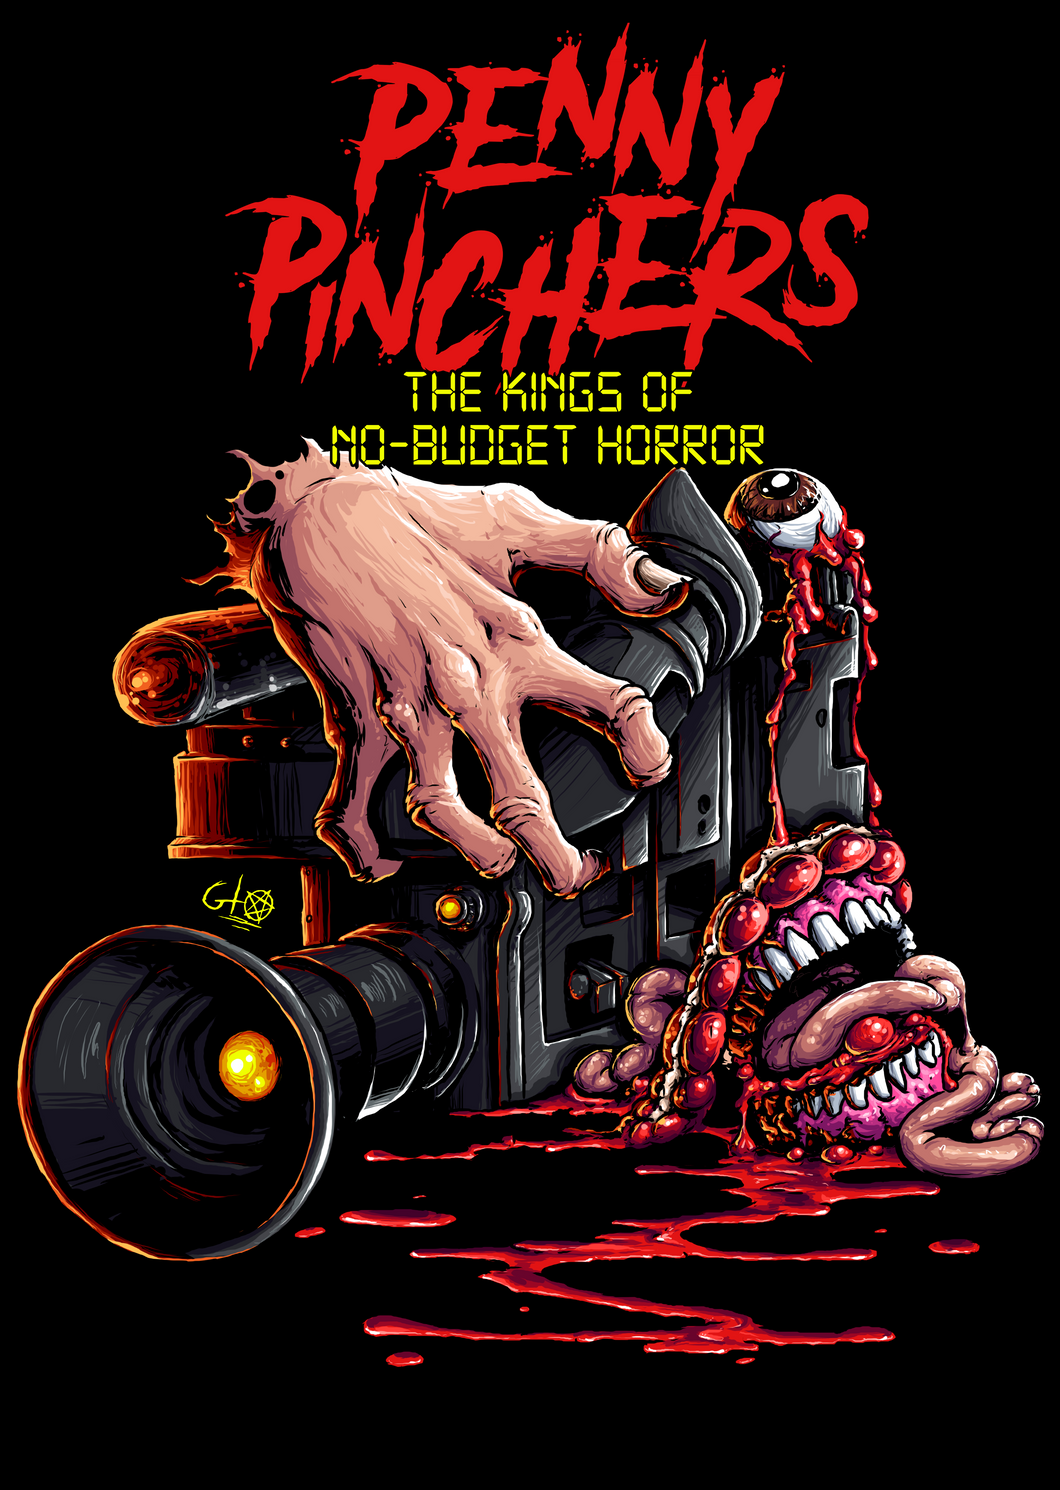 Penny Pinchers, the Kings of No-Budget Horror VHS